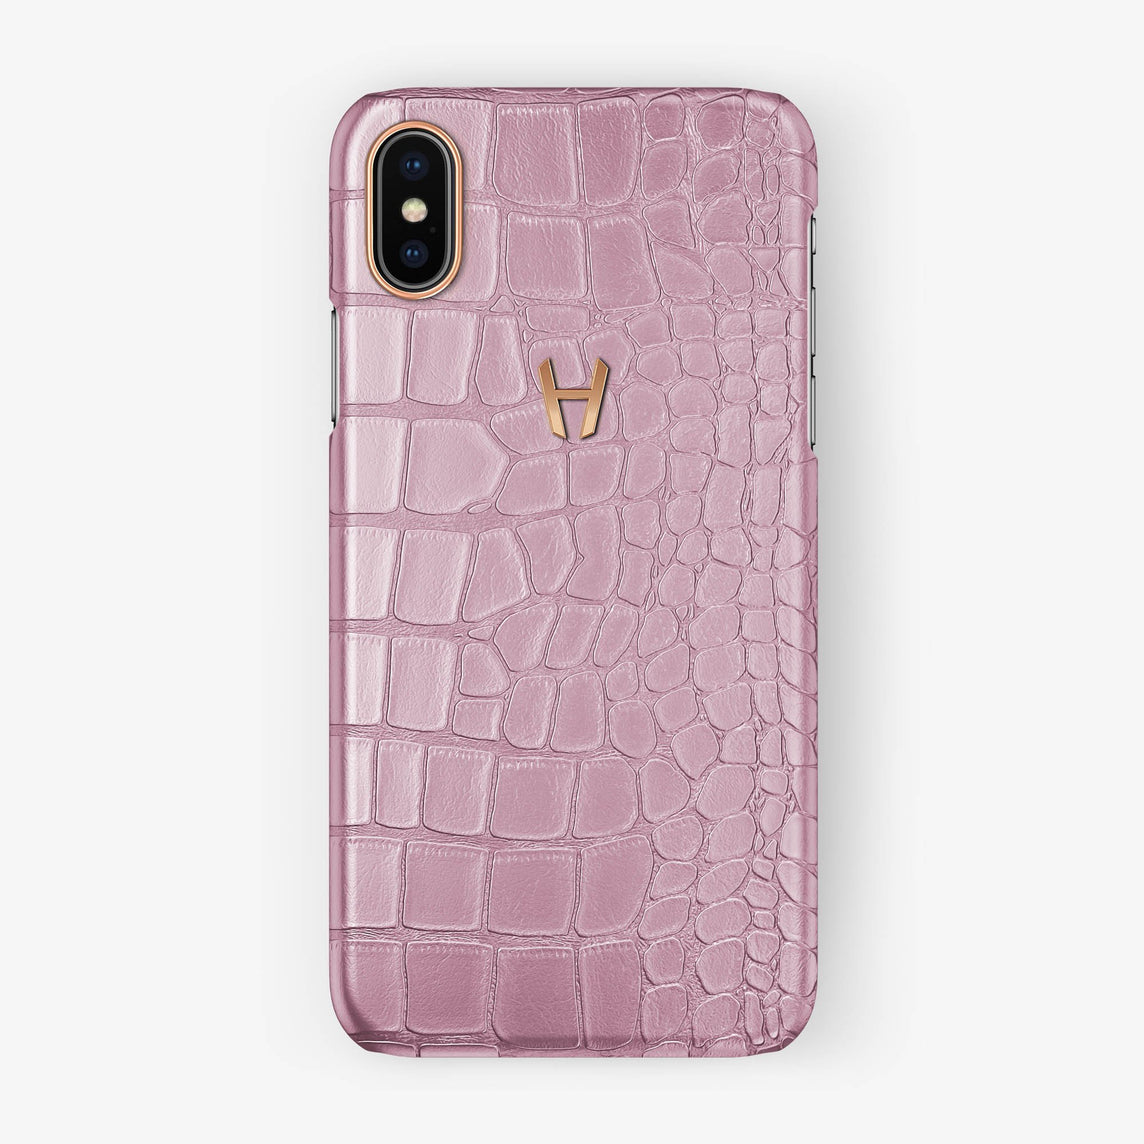 Alligator Case iPhone X/Xs | Pink - Rose Gold - Hadoro